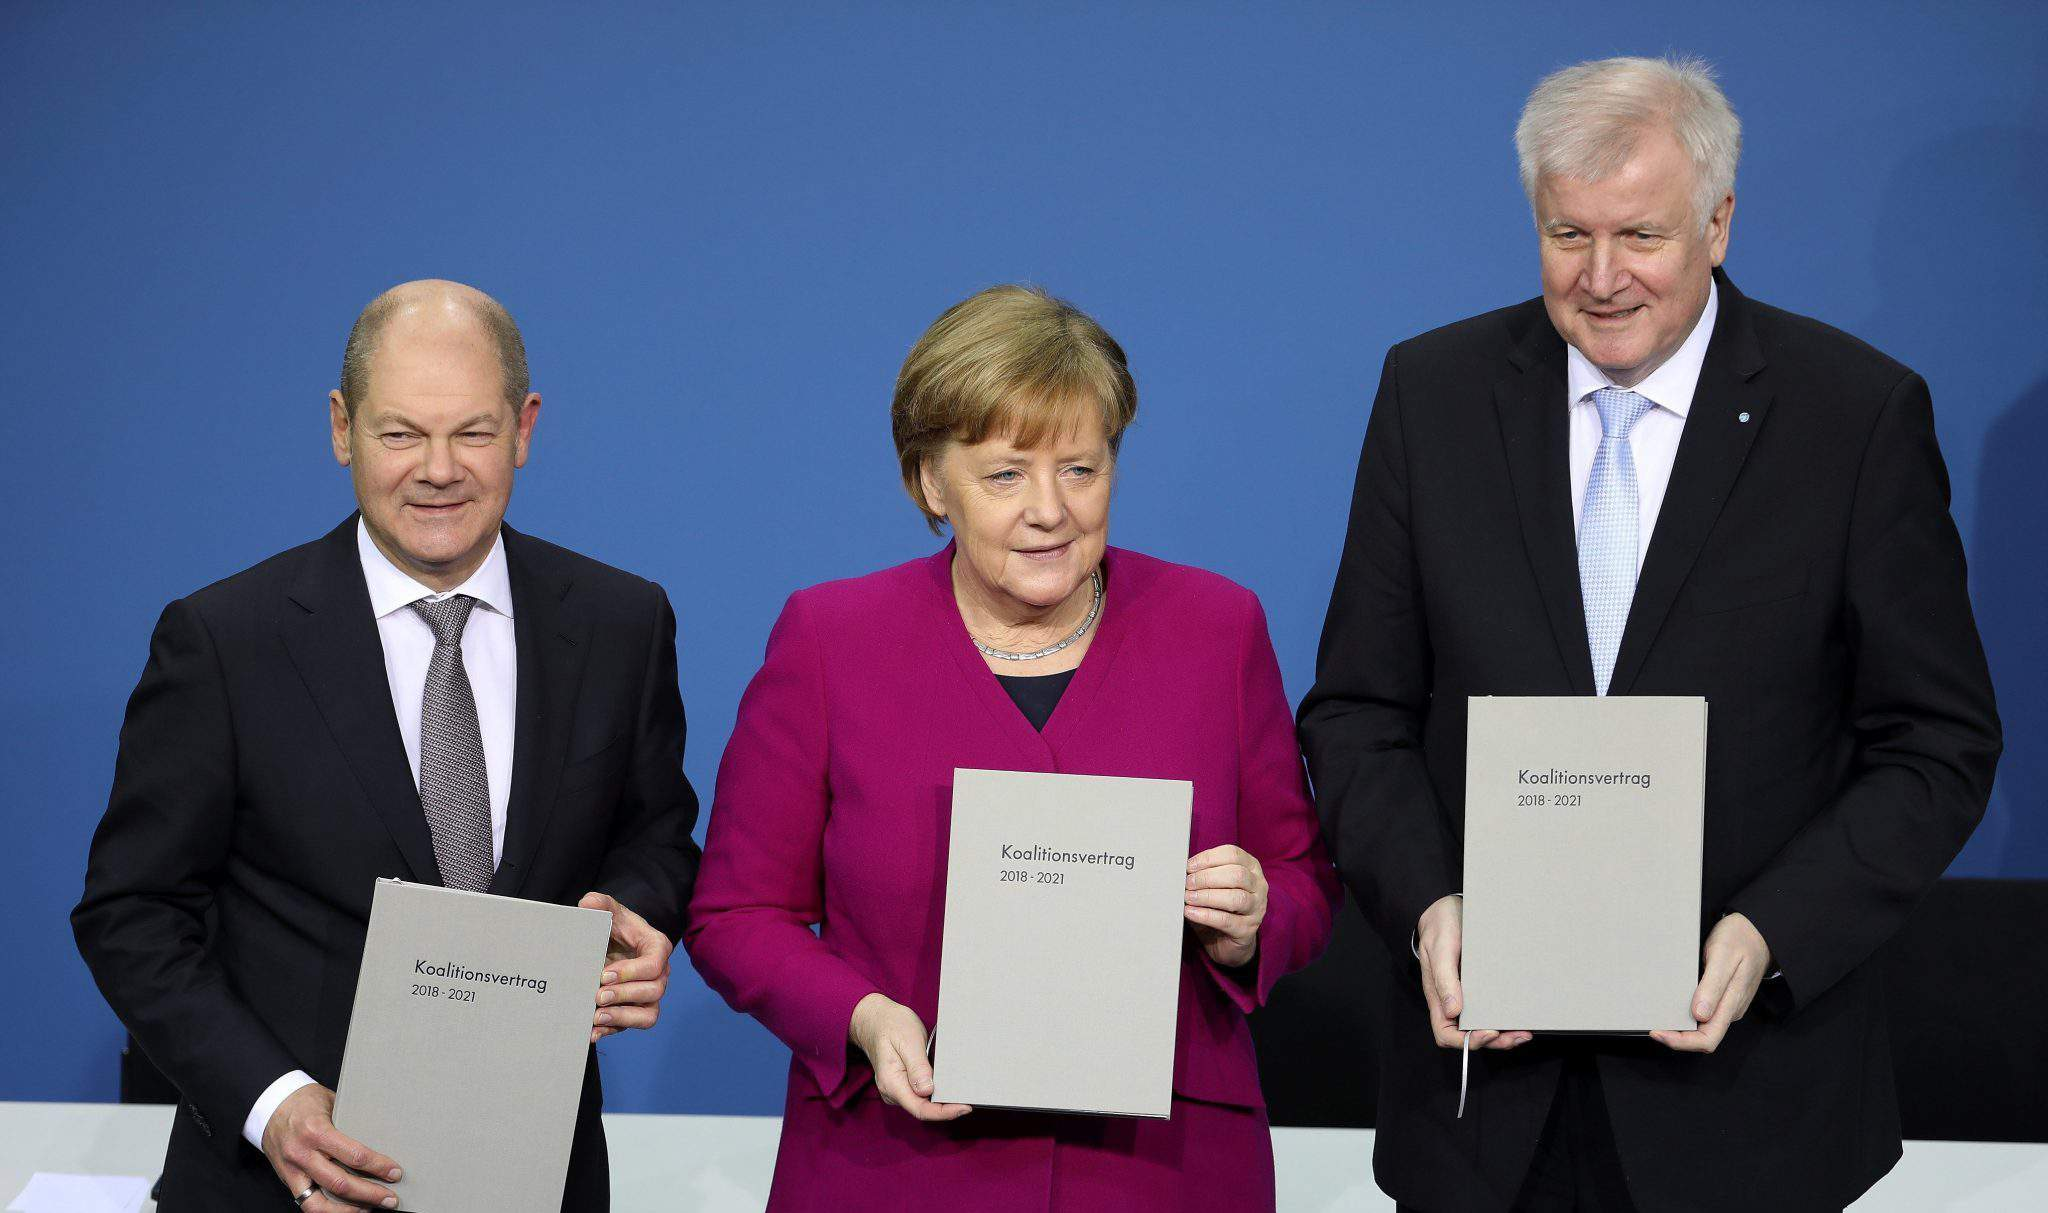 Germany coalition government